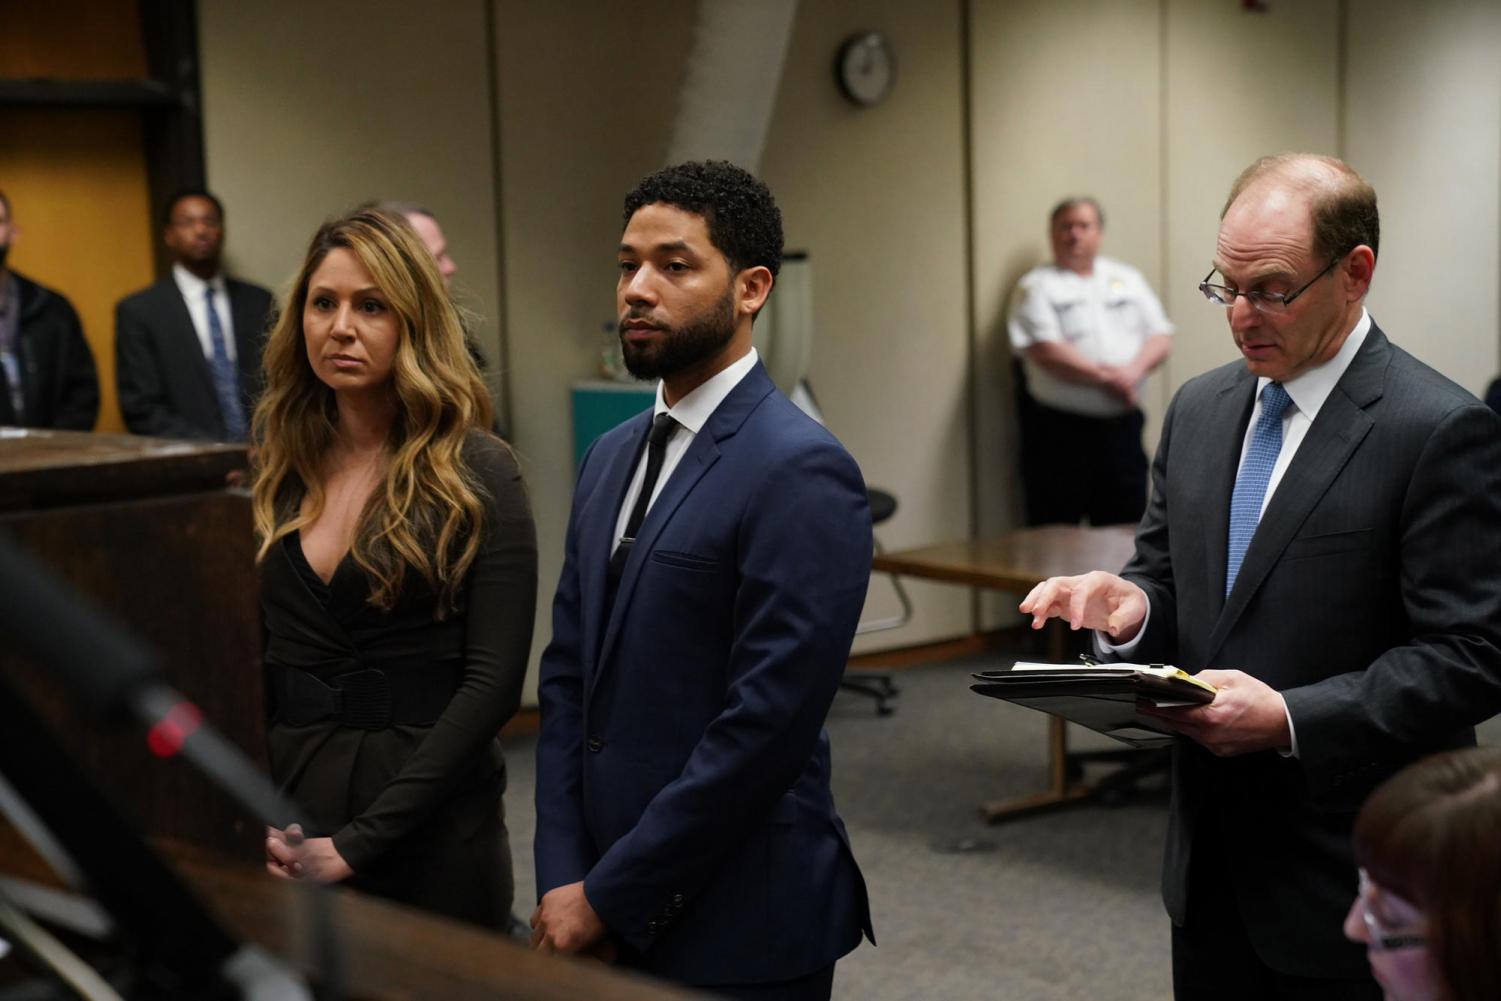 Jussie Smollett as he faces the judge in court. All charges against him would later be dropped.